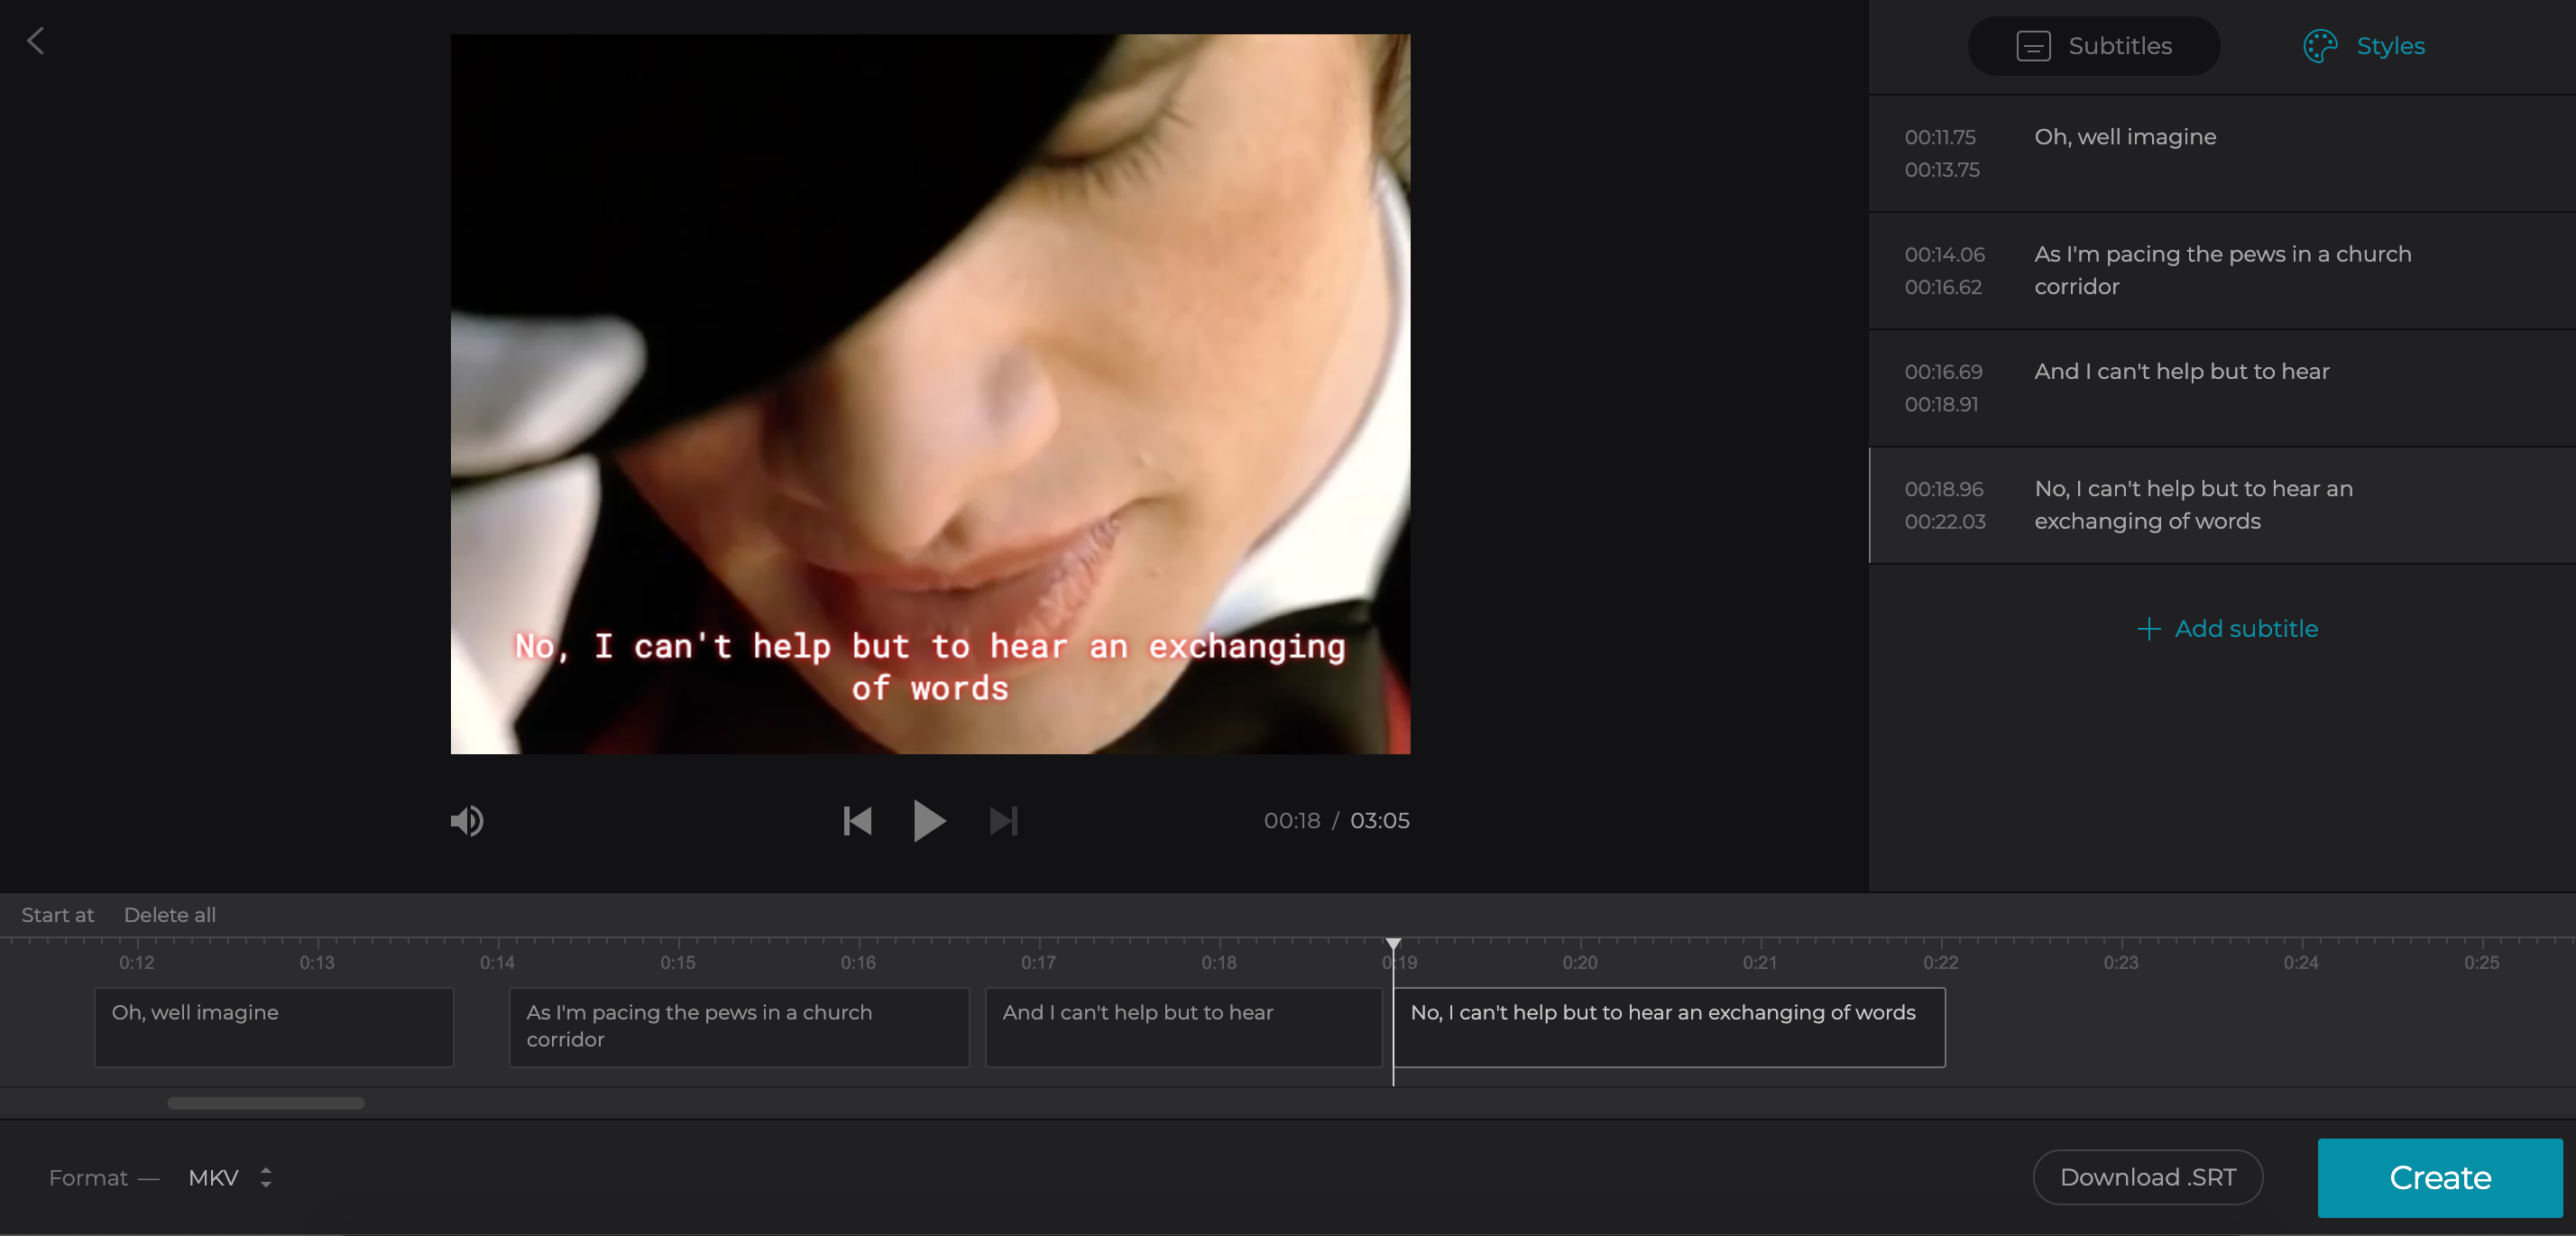 Add subtitles to the MKV video